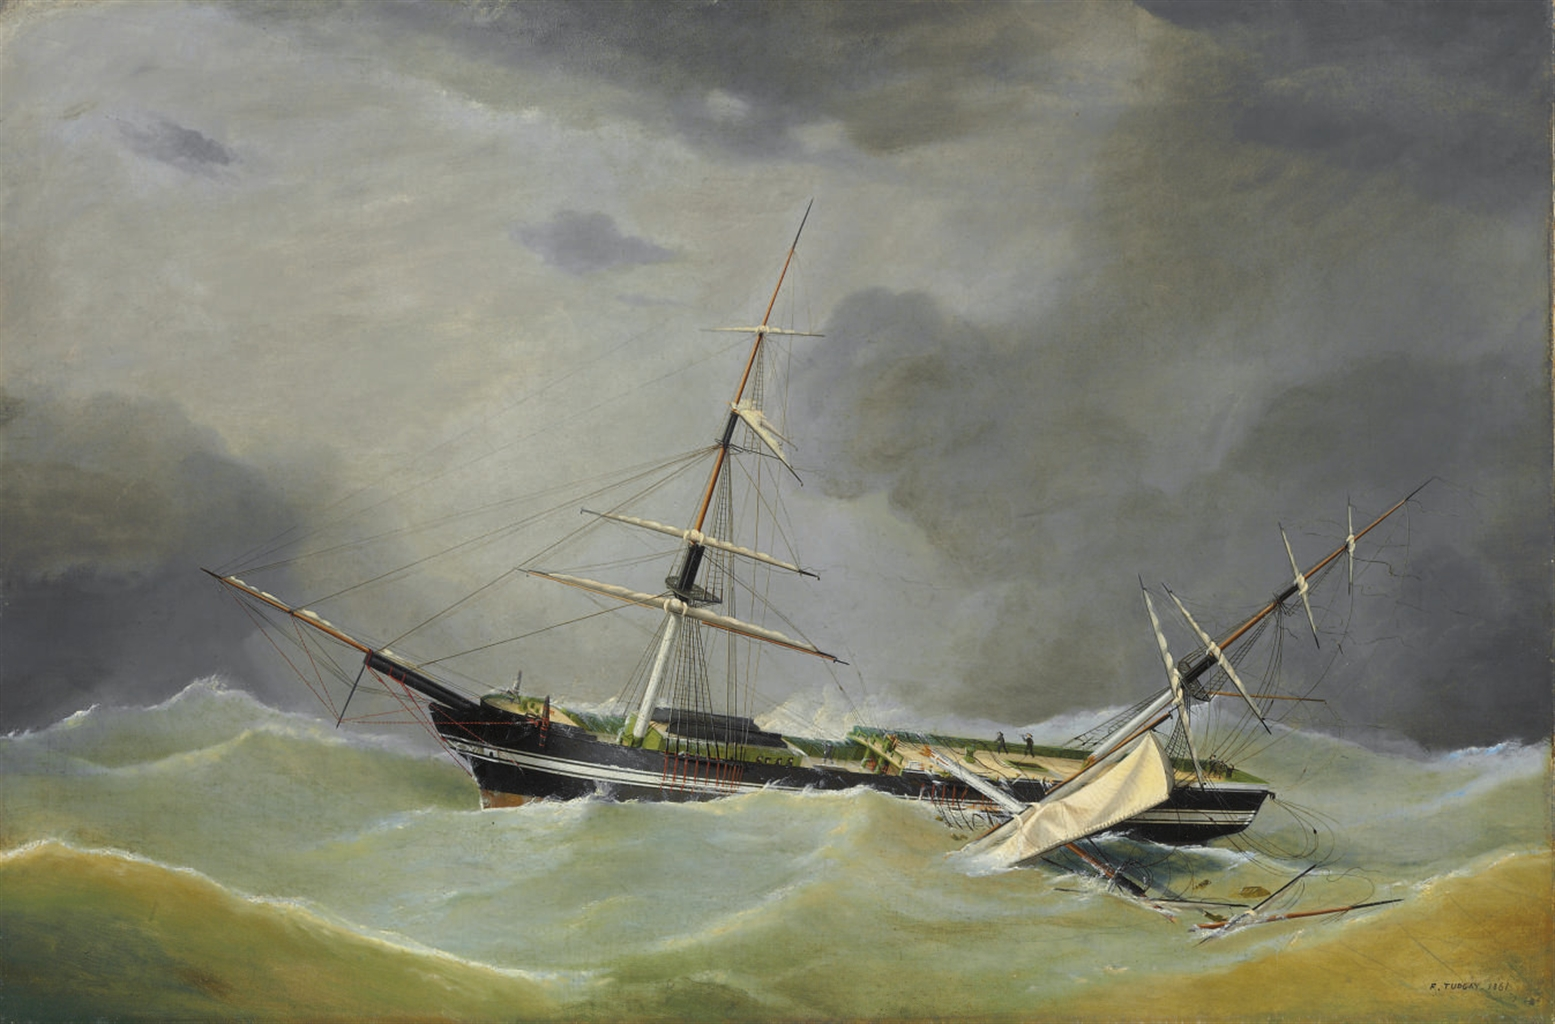 frederick_tudgay_a_dismasted_ship_riding_out_the_gale.jpg